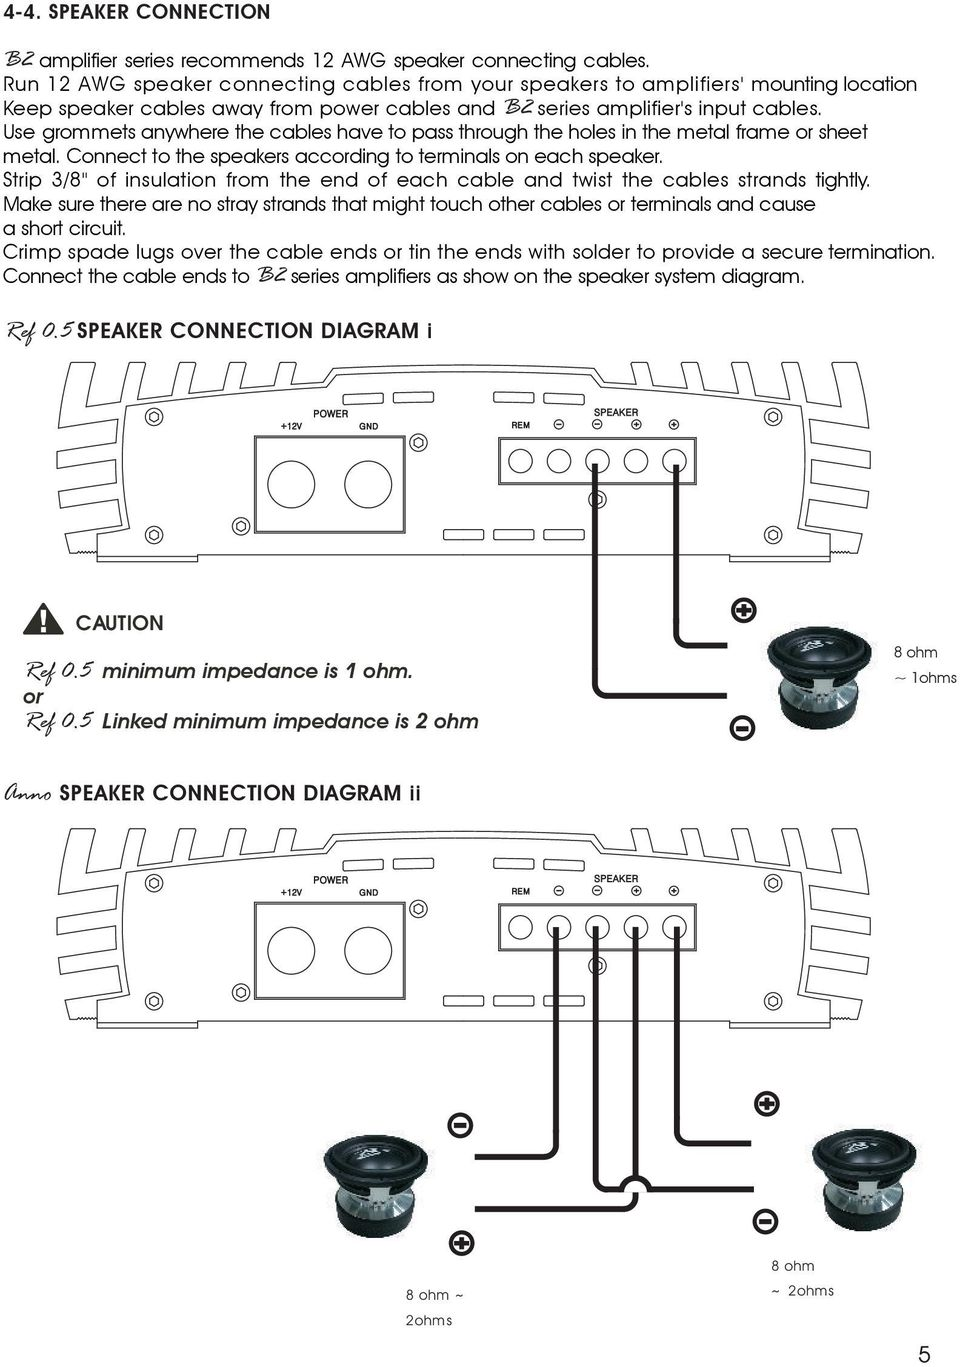 Owners Manual High Performance Amplifiers Pdf Wiring Diagrams For 4 8 Ohm Speakers Use Grommets Anywhere The Cables Have To Pass Through Holes In Metal Frame Or 7 Anno Speaker Connection Diagram